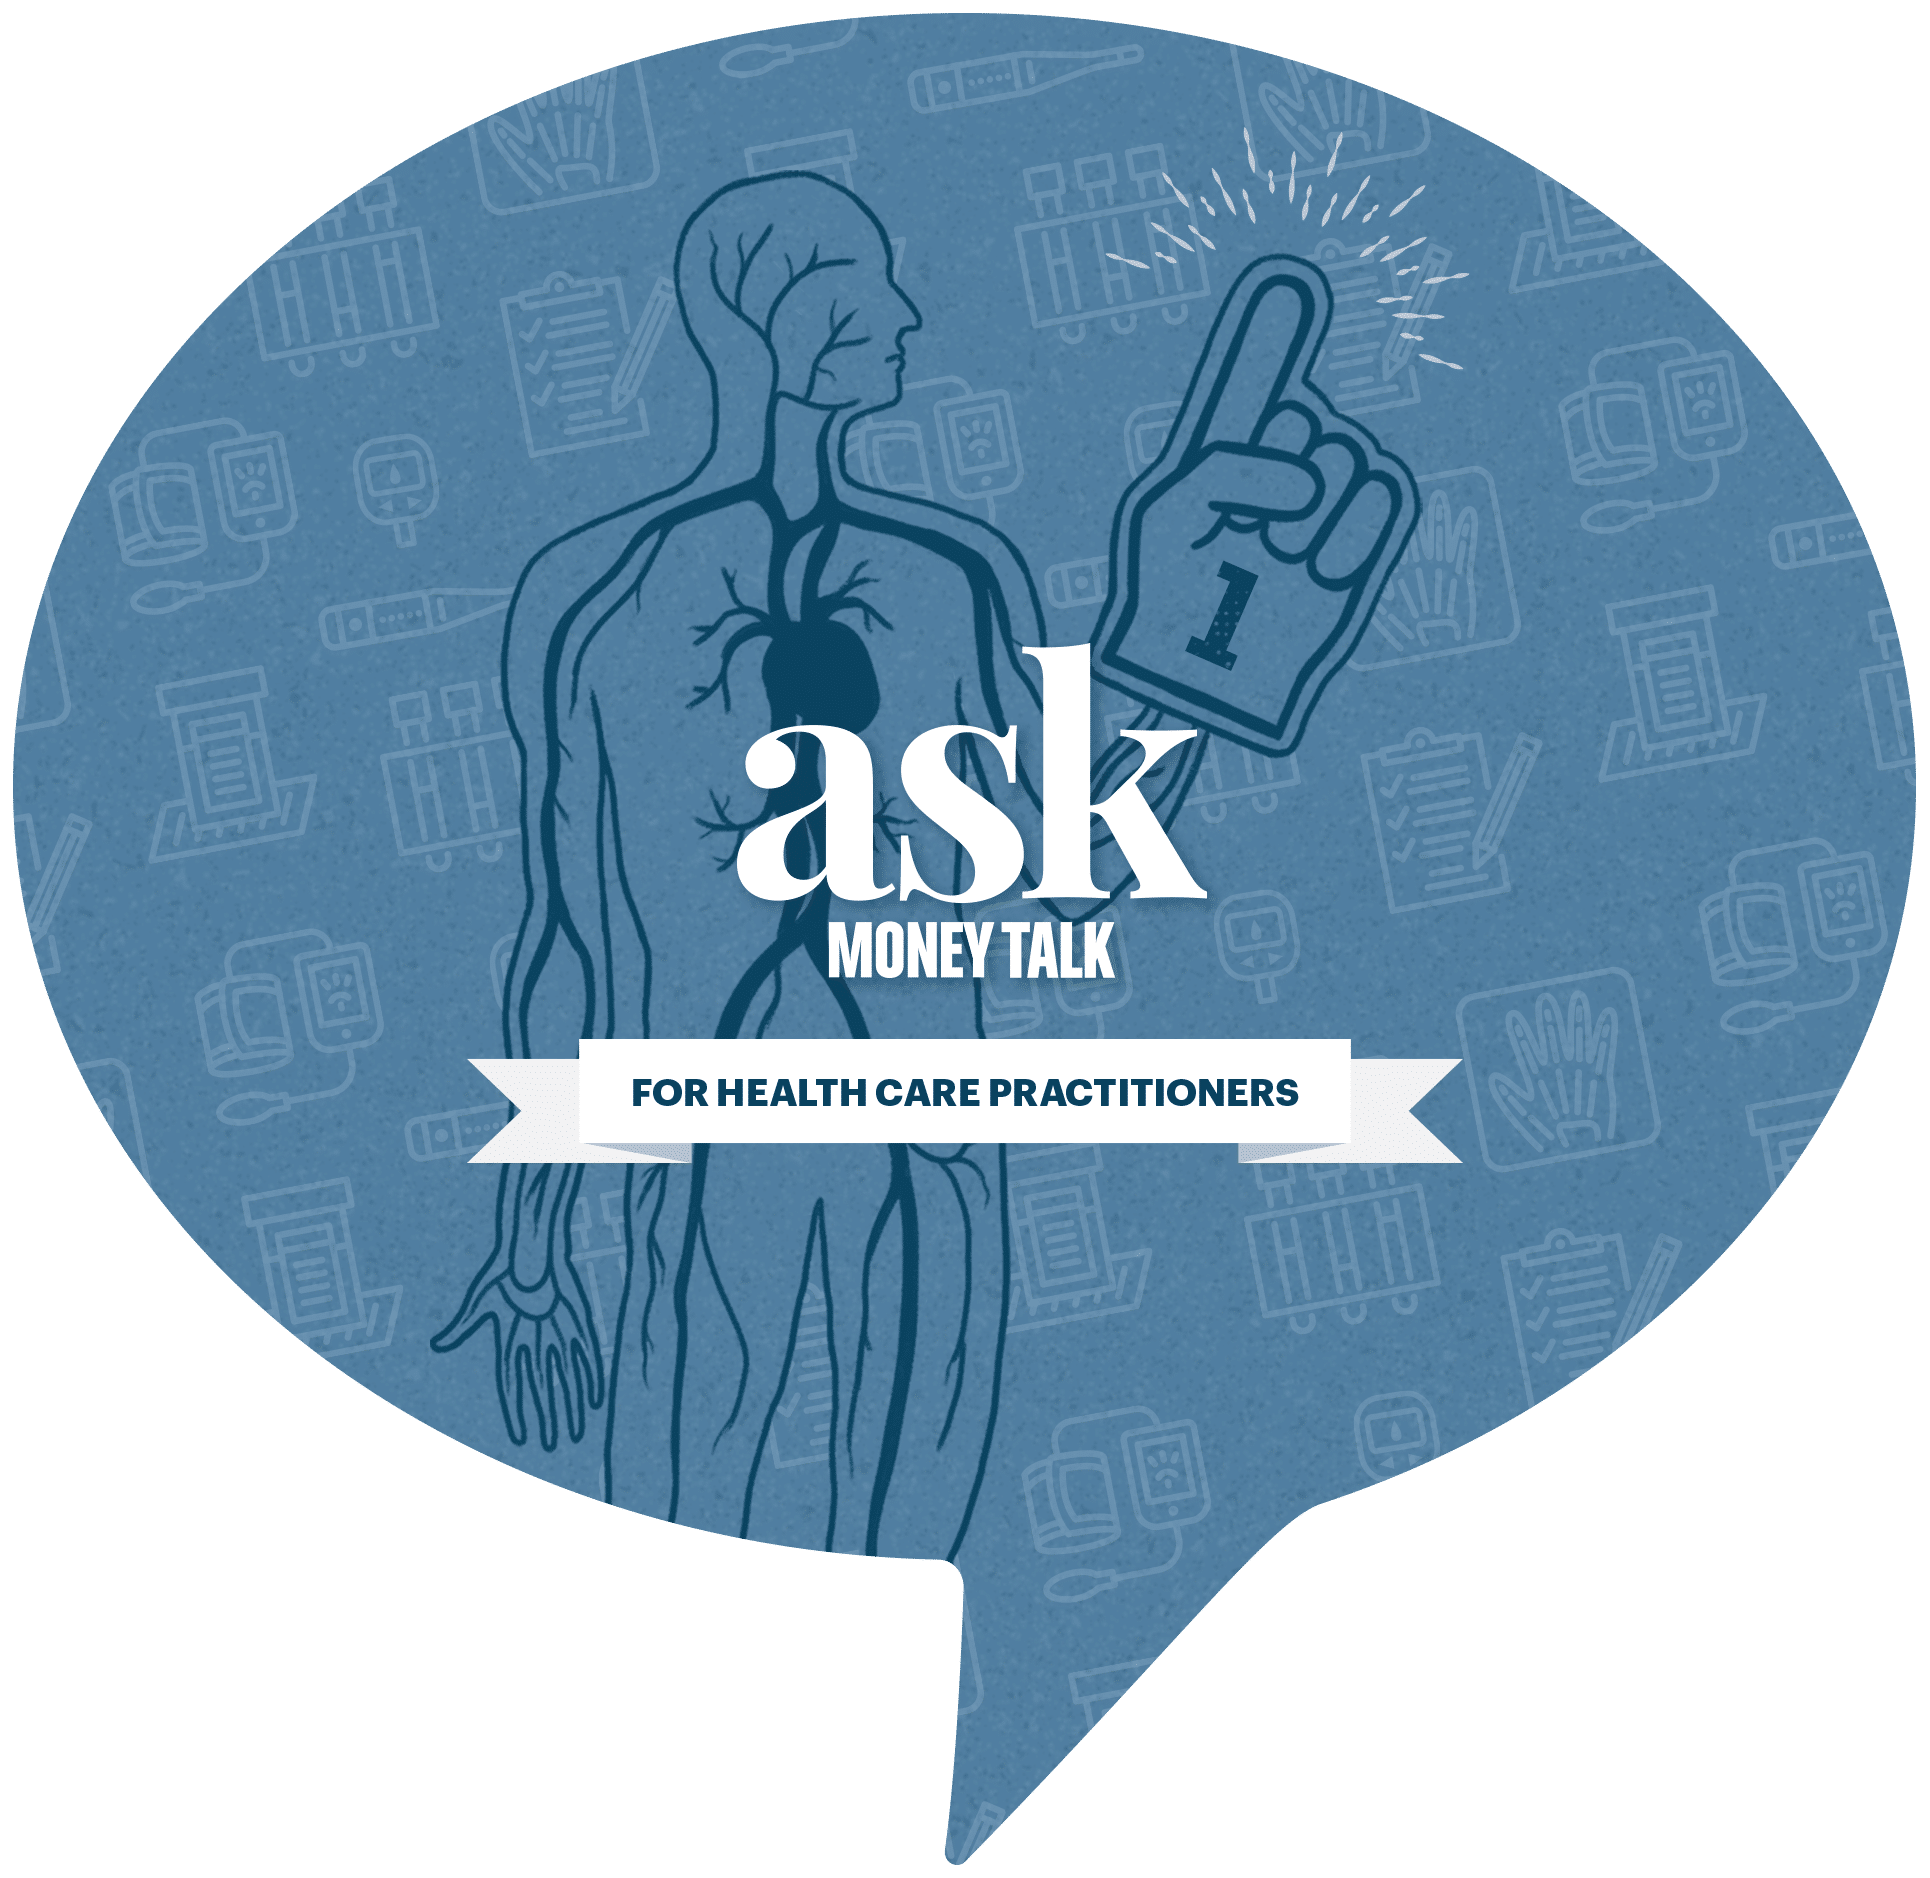 AskMoneyTalk logo with medical diagram